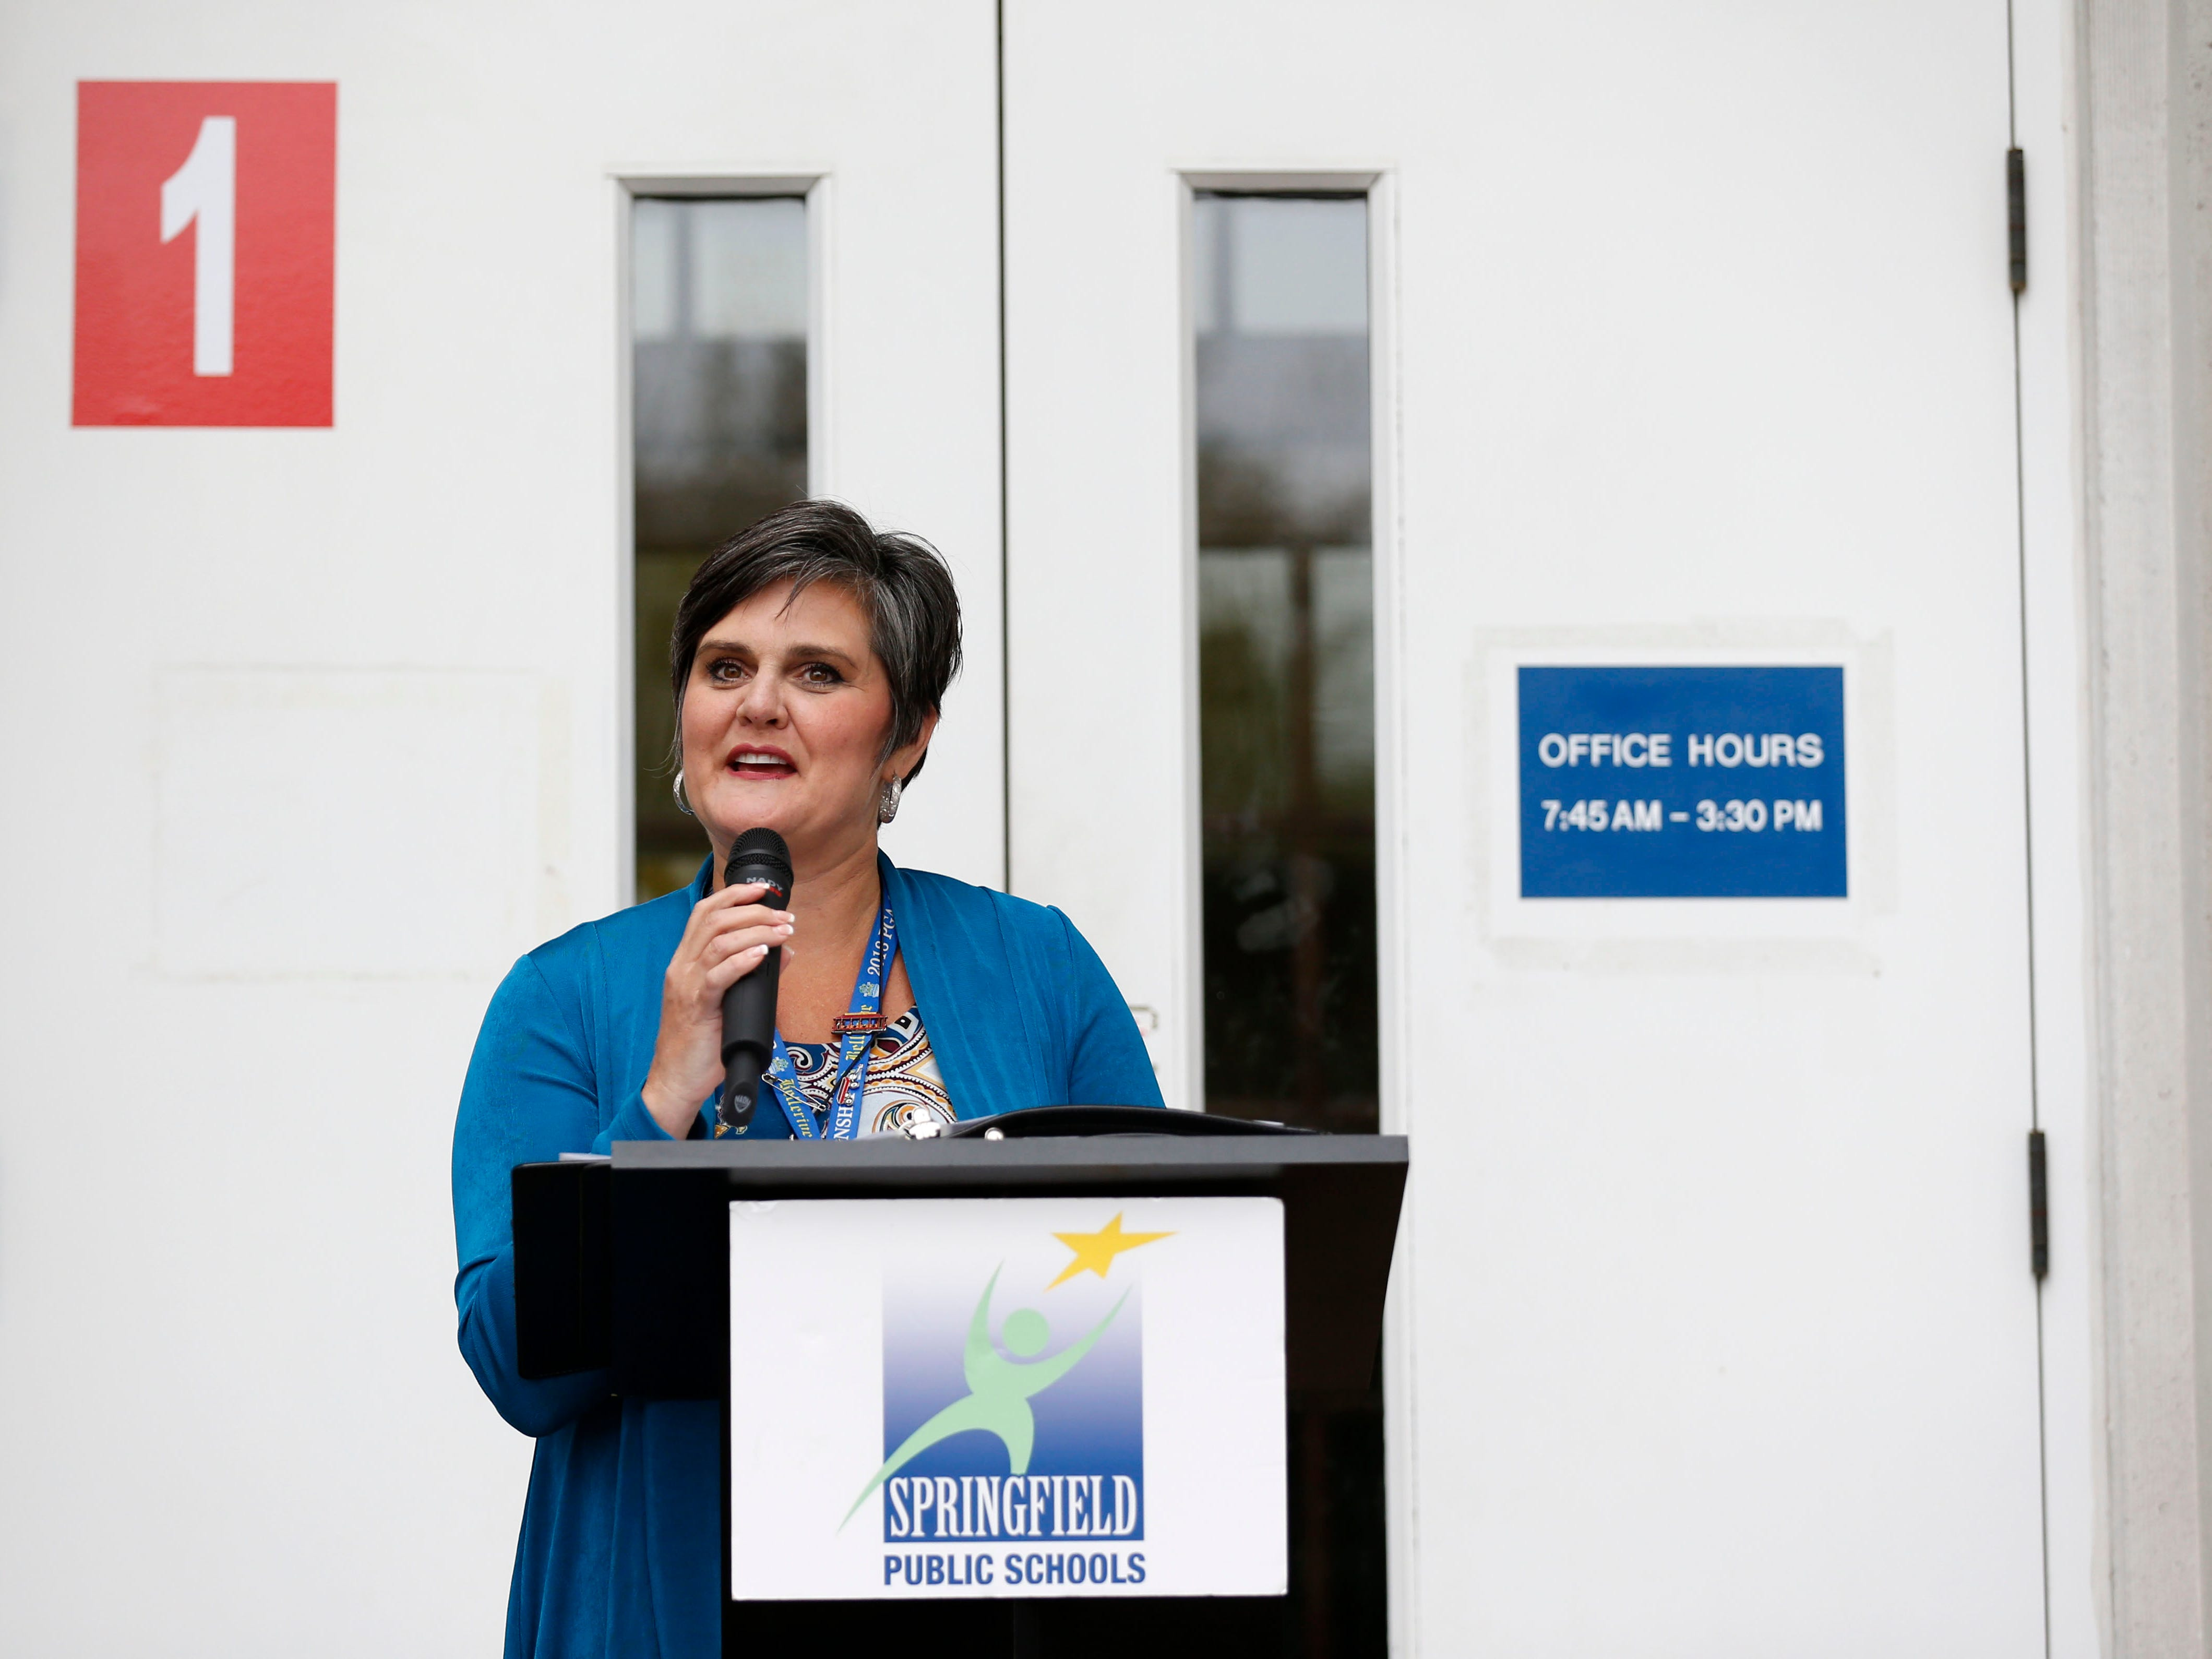 Missy Riley, Director of Early Childhood at Springfield Public Schools, speaks at a ribbon cutting for the new Campbell Early Childhood Center on Thursday, Sept. 26, 2018.